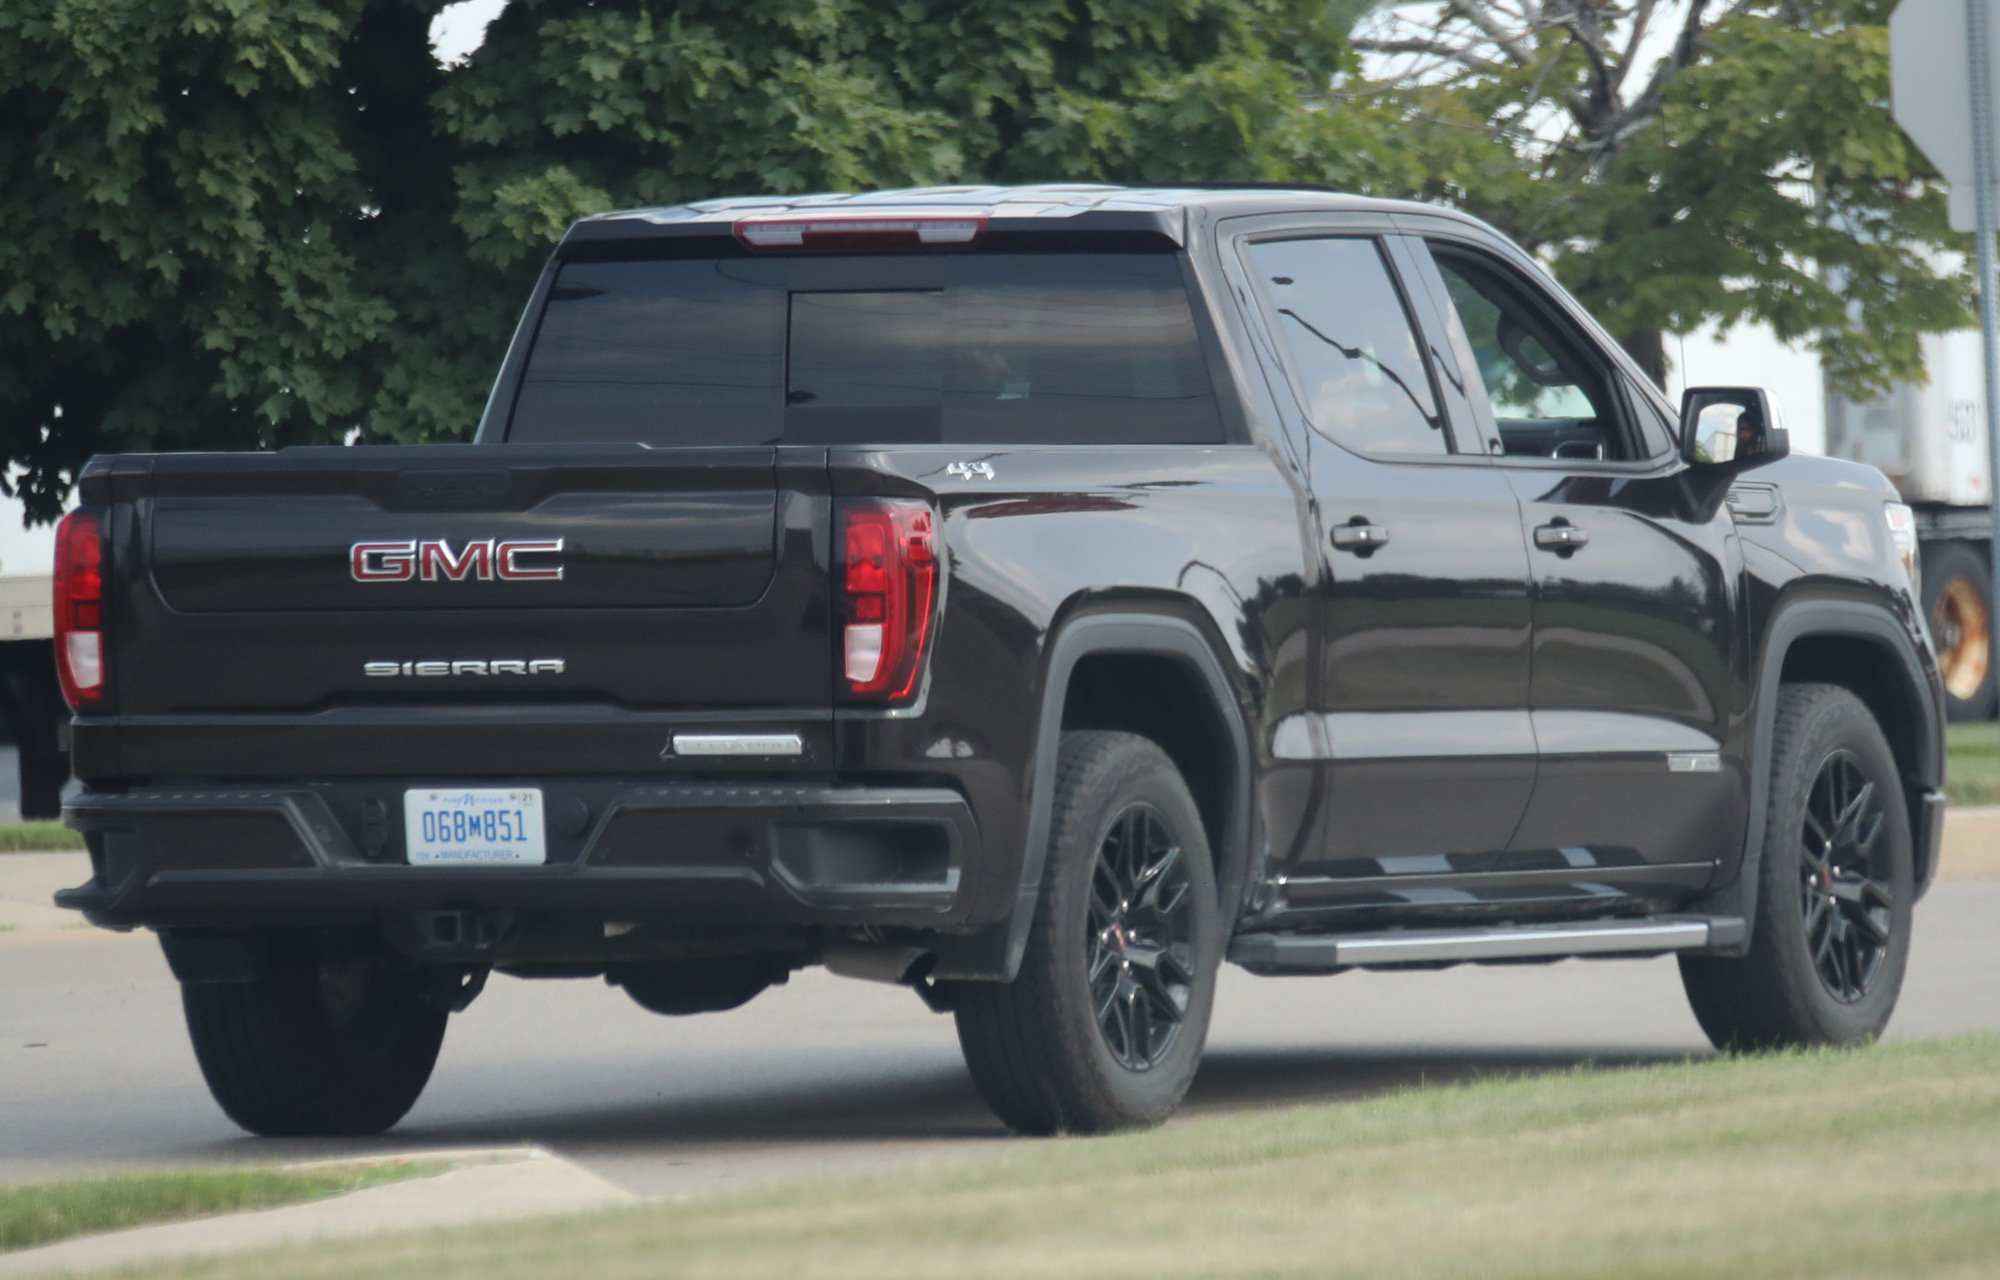 72 Best GMC Elevation 2020 Pictures